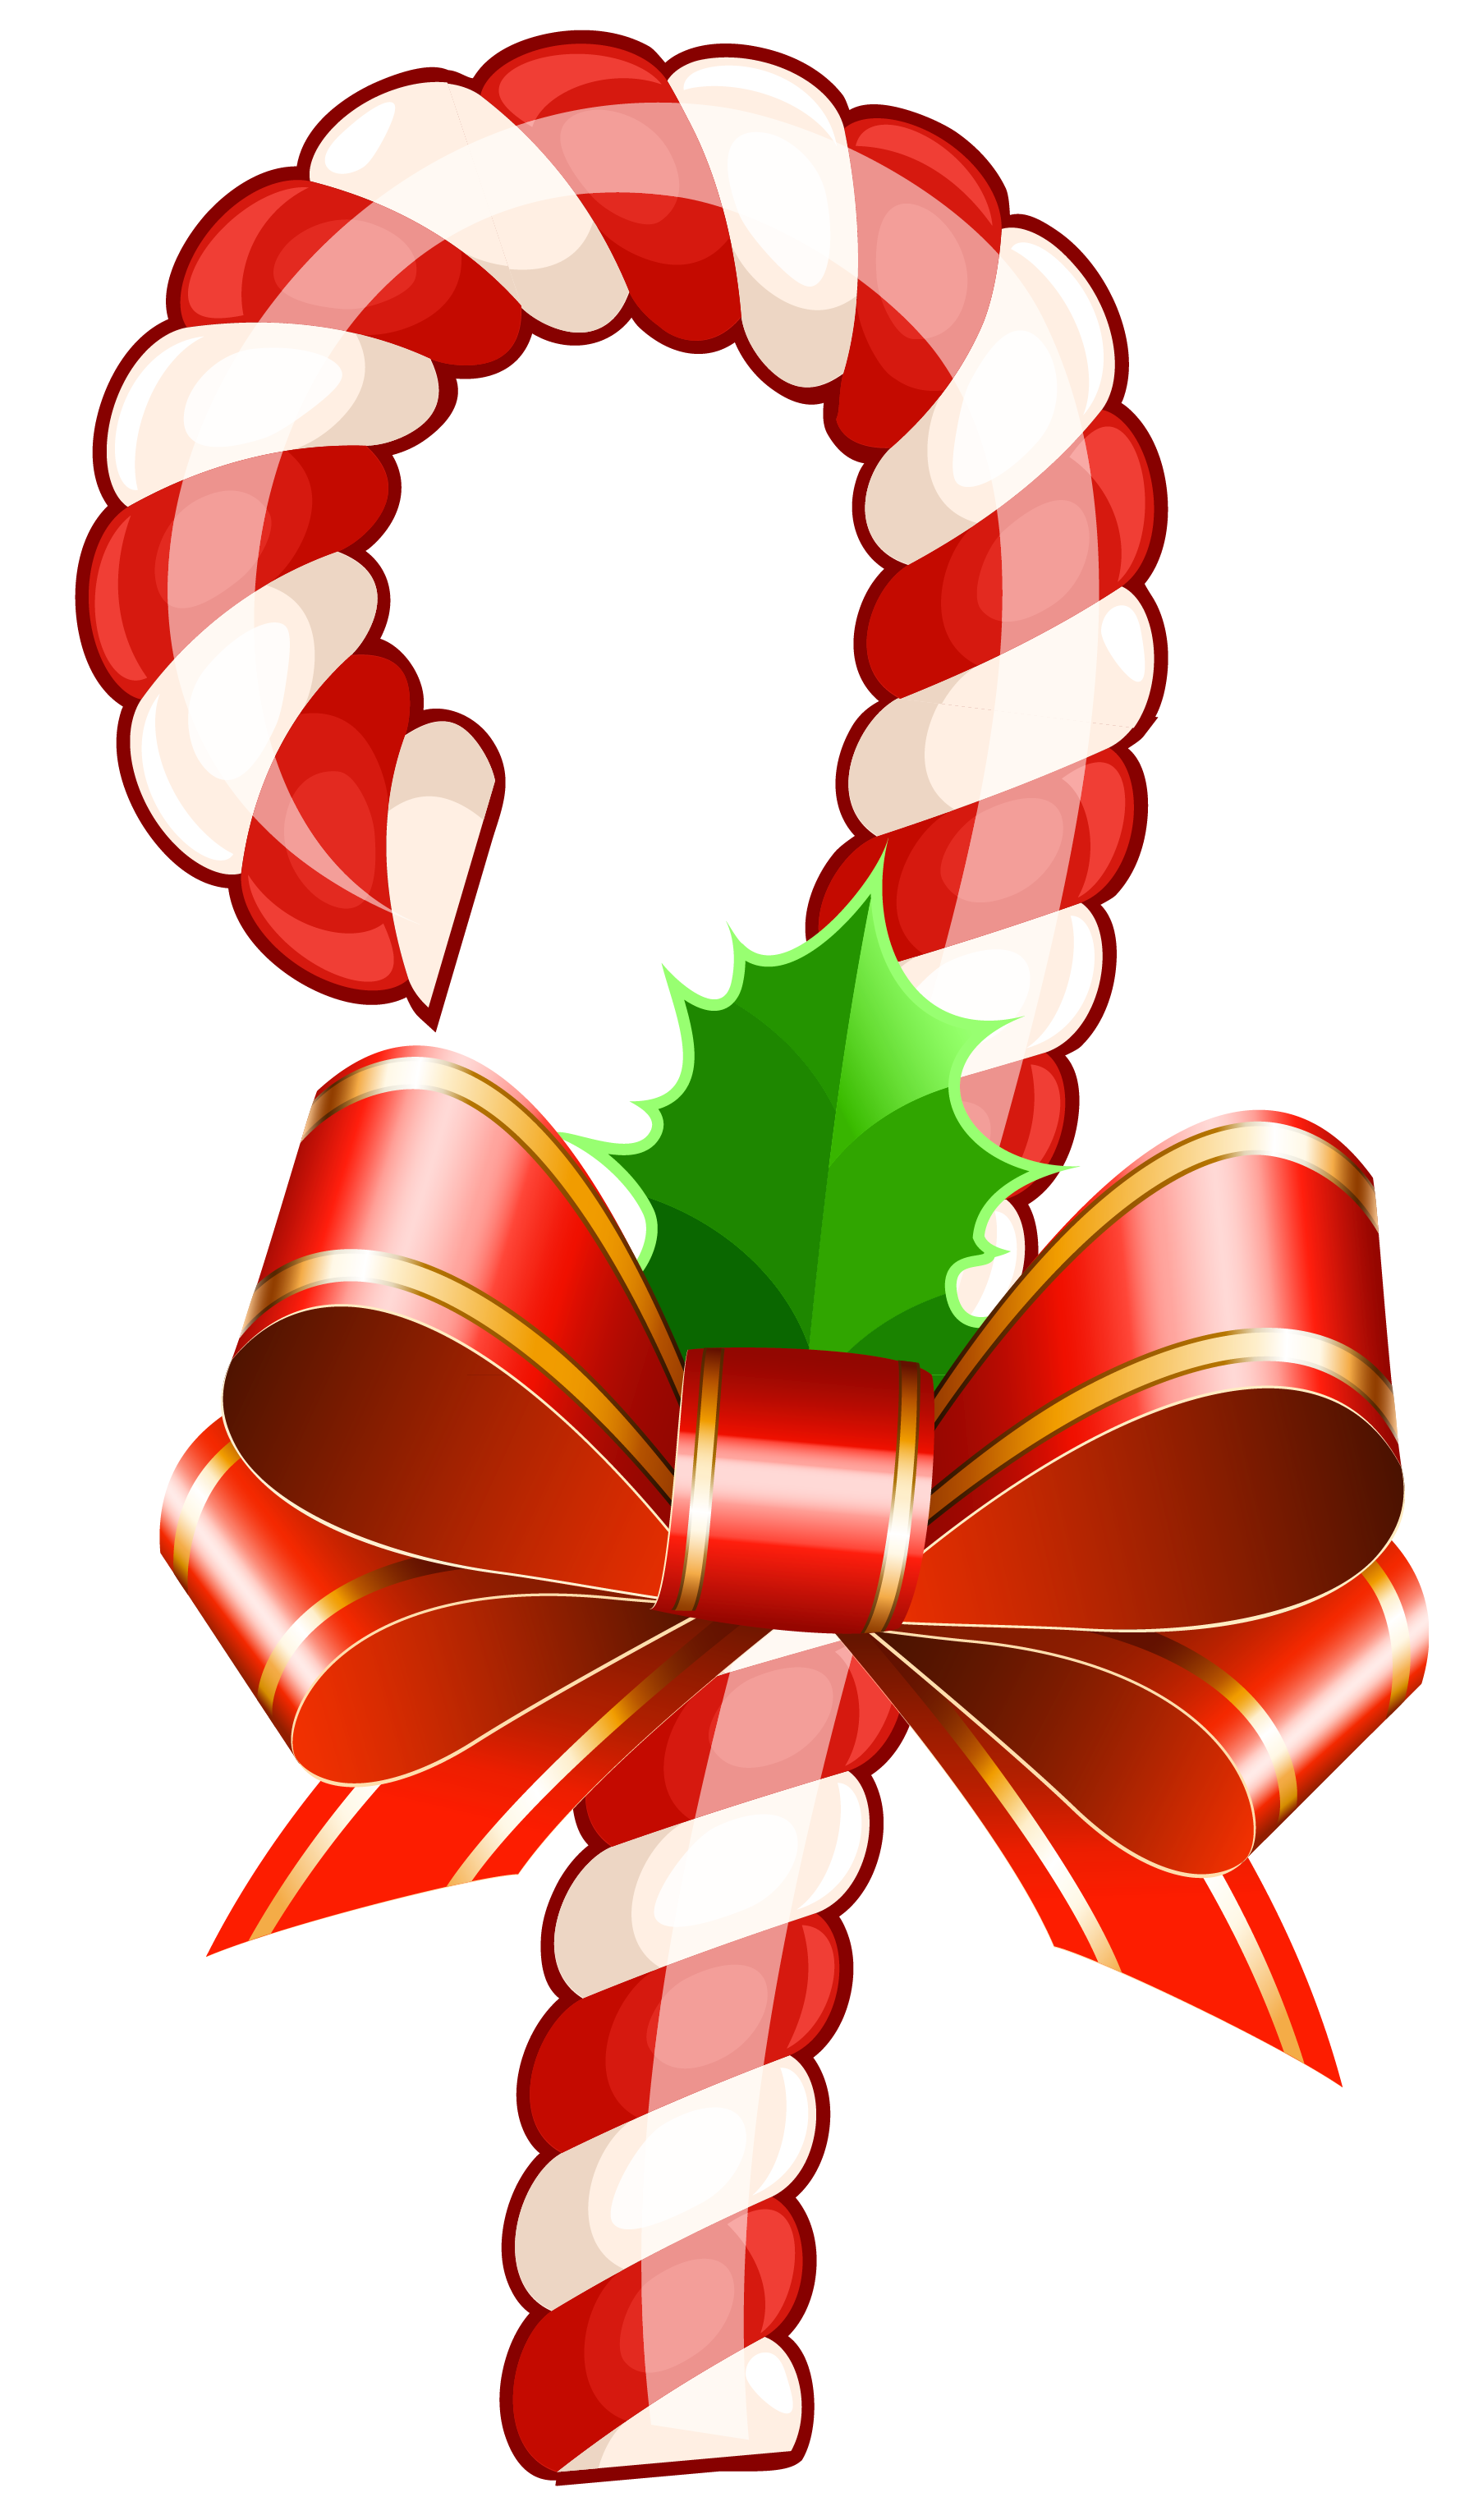 Candy cane clipart transparent background black and white library Candy cane clipart transparent background clipart images gallery for ... black and white library